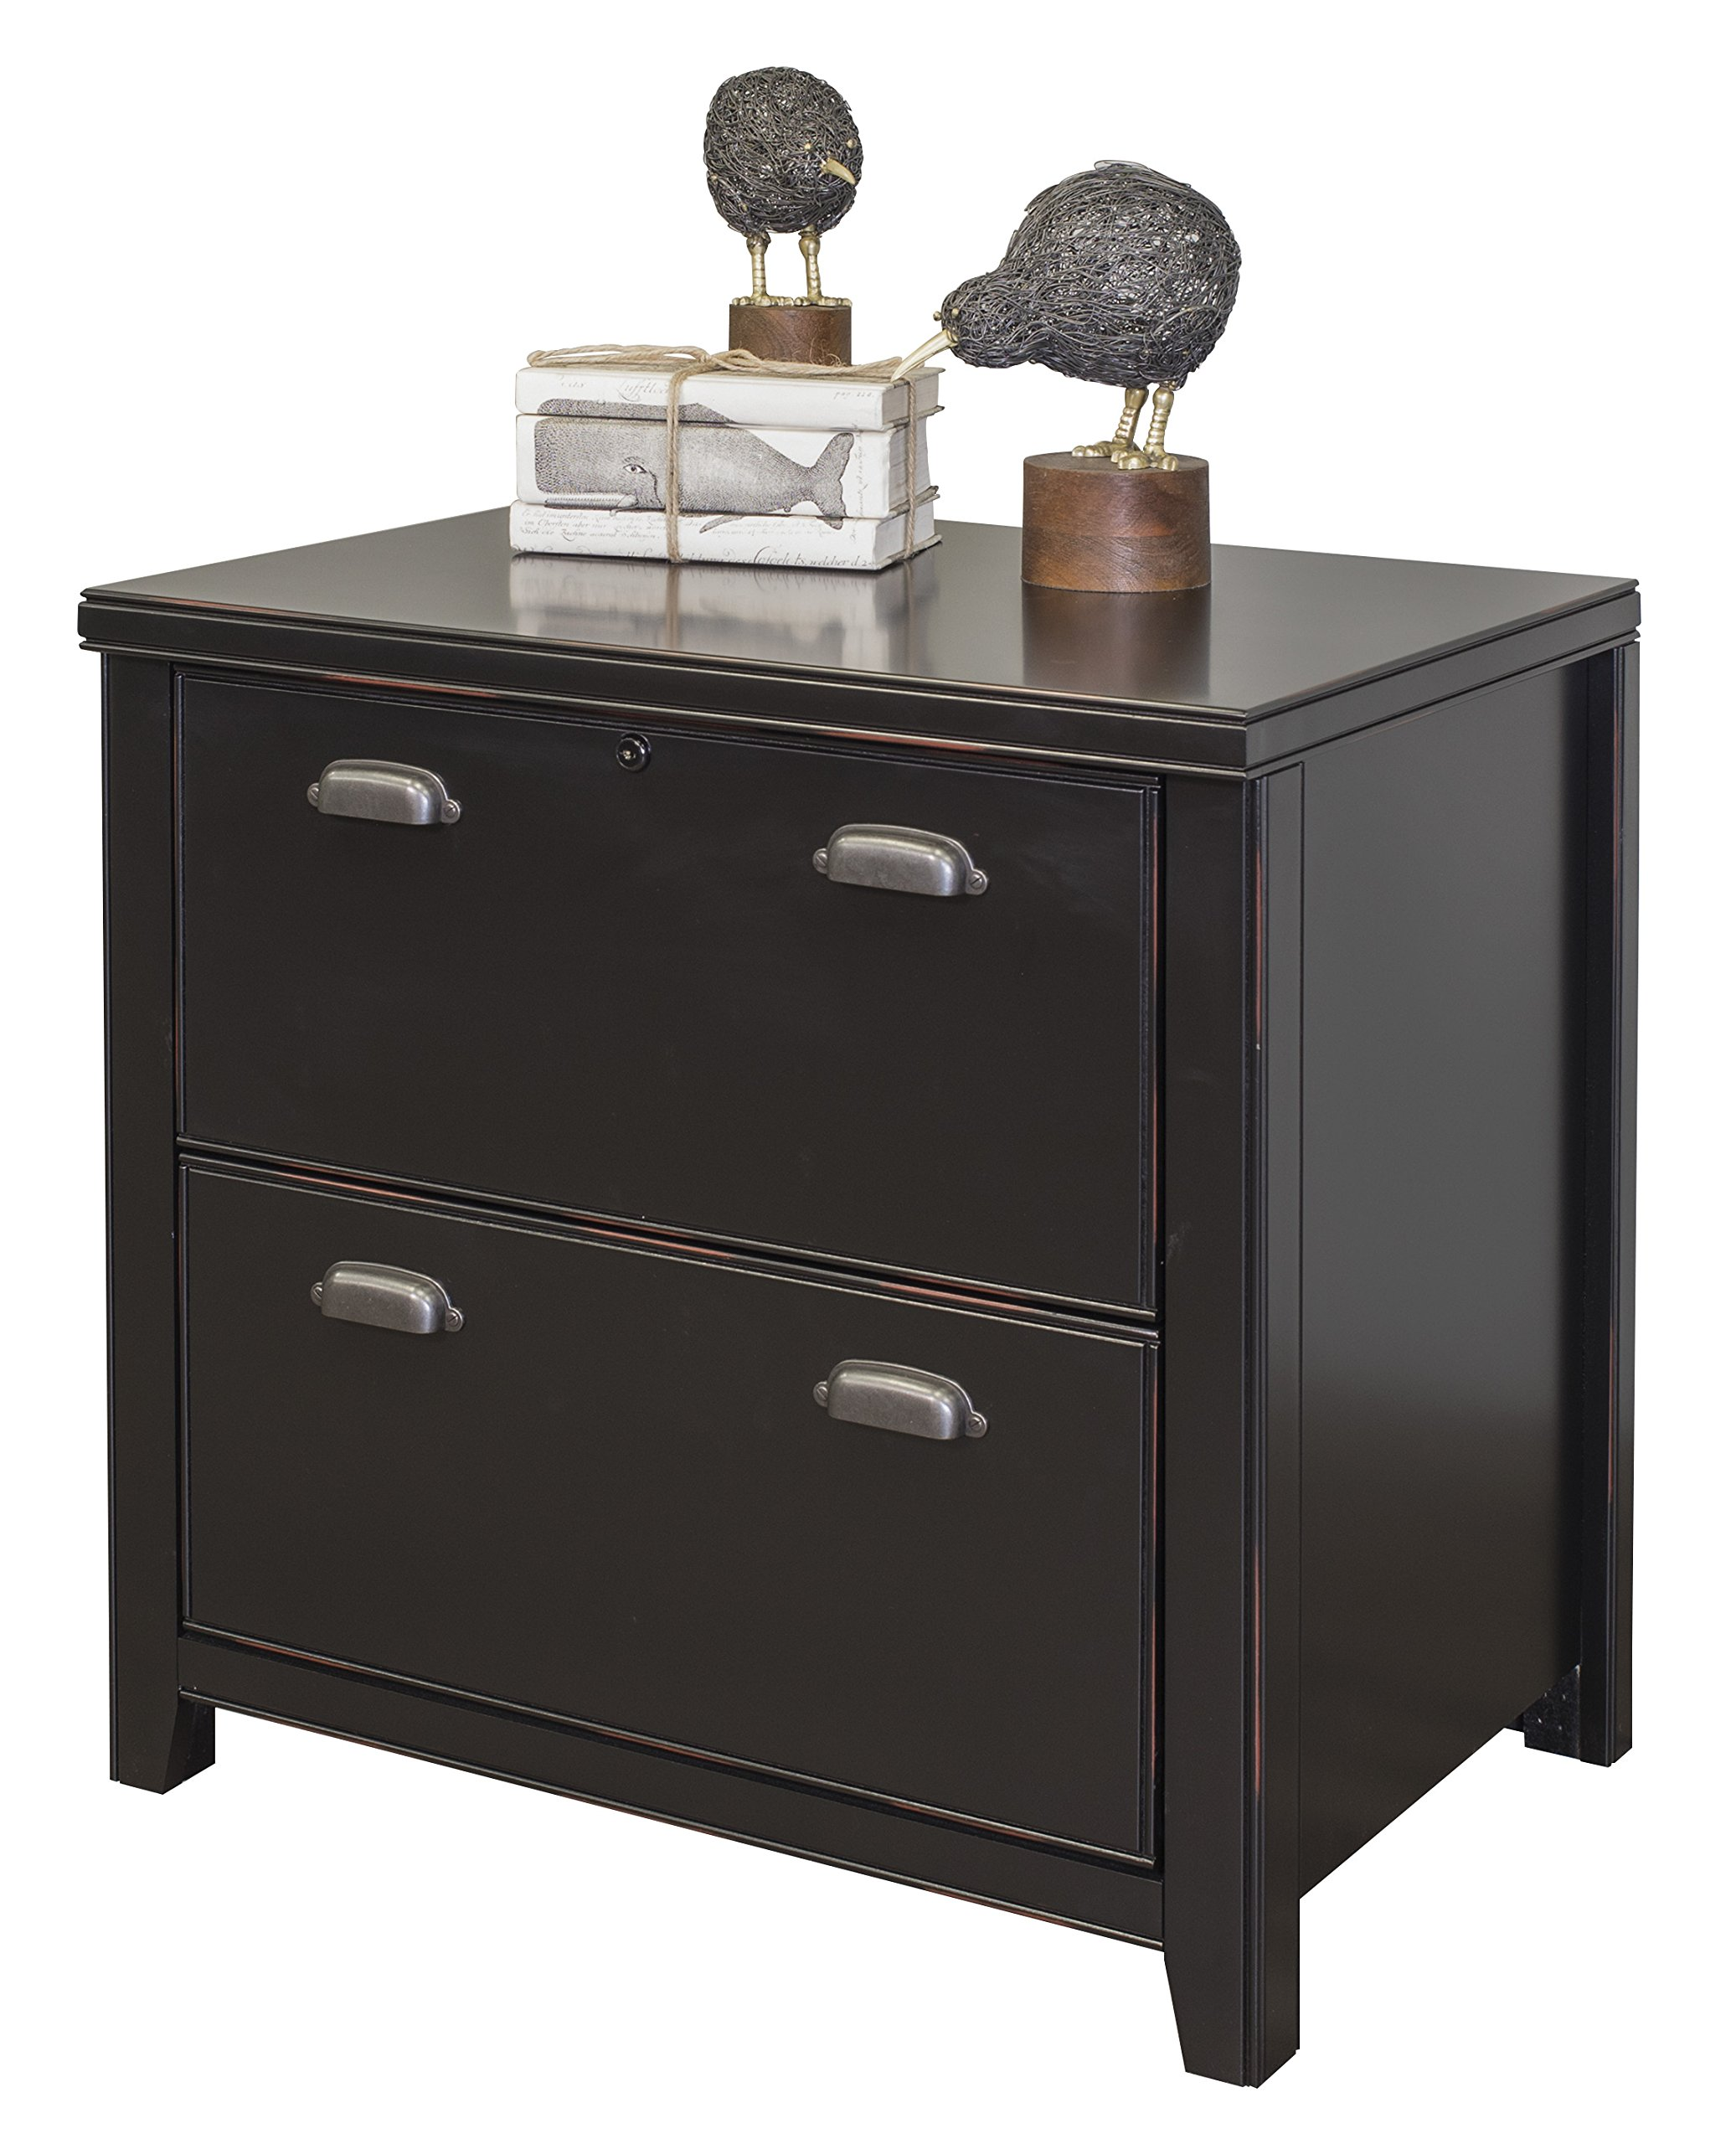 lateral idea home hon drawer lock interesting best office for with design inspiration furniture metal cabinet file your